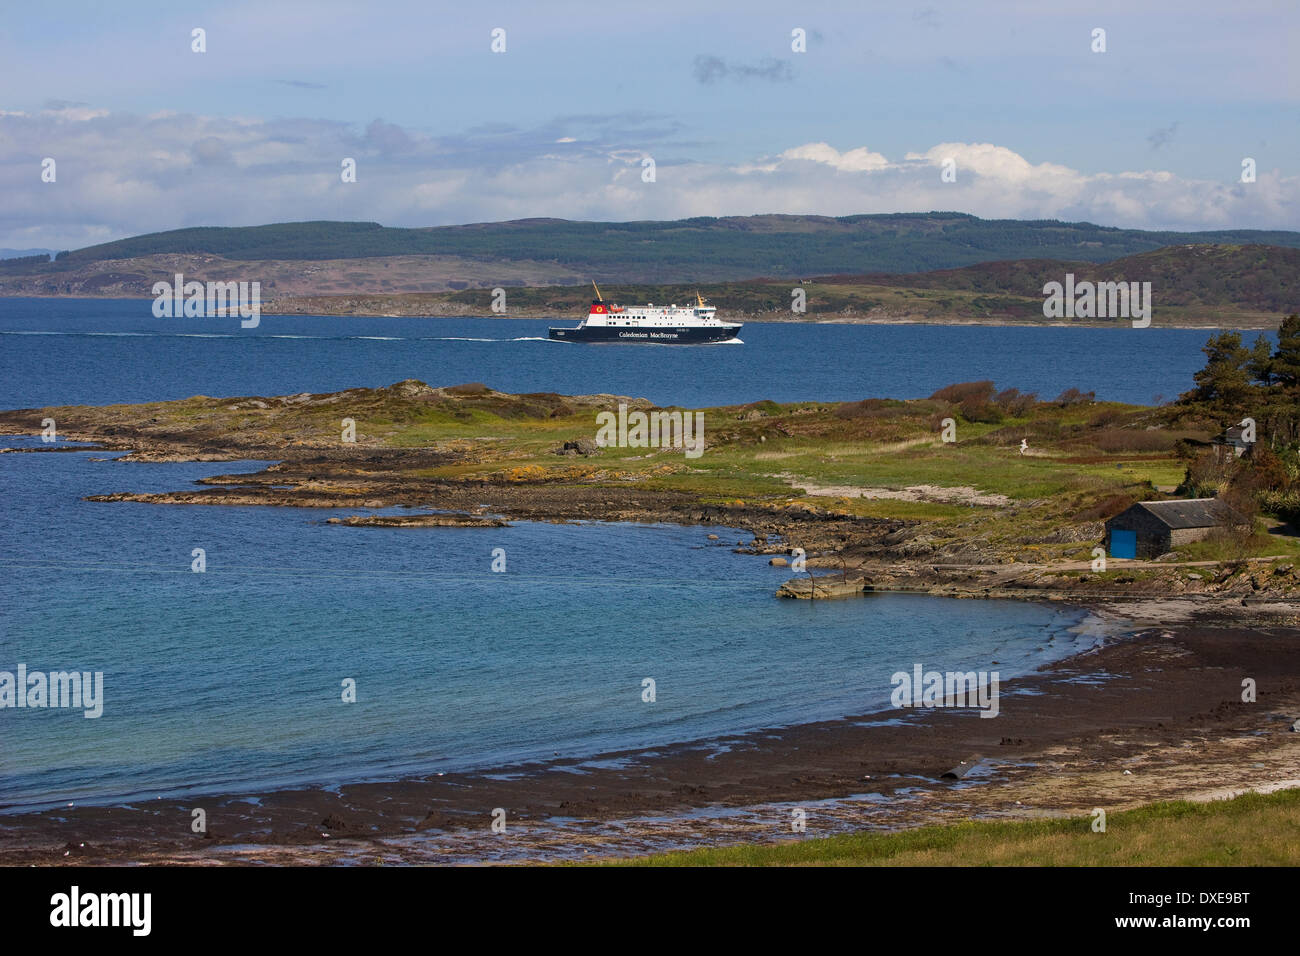 Cal Mac ferries latest car ferry the Finlaggan enters west loch tarbert en route from islay.argyll - Stock Image